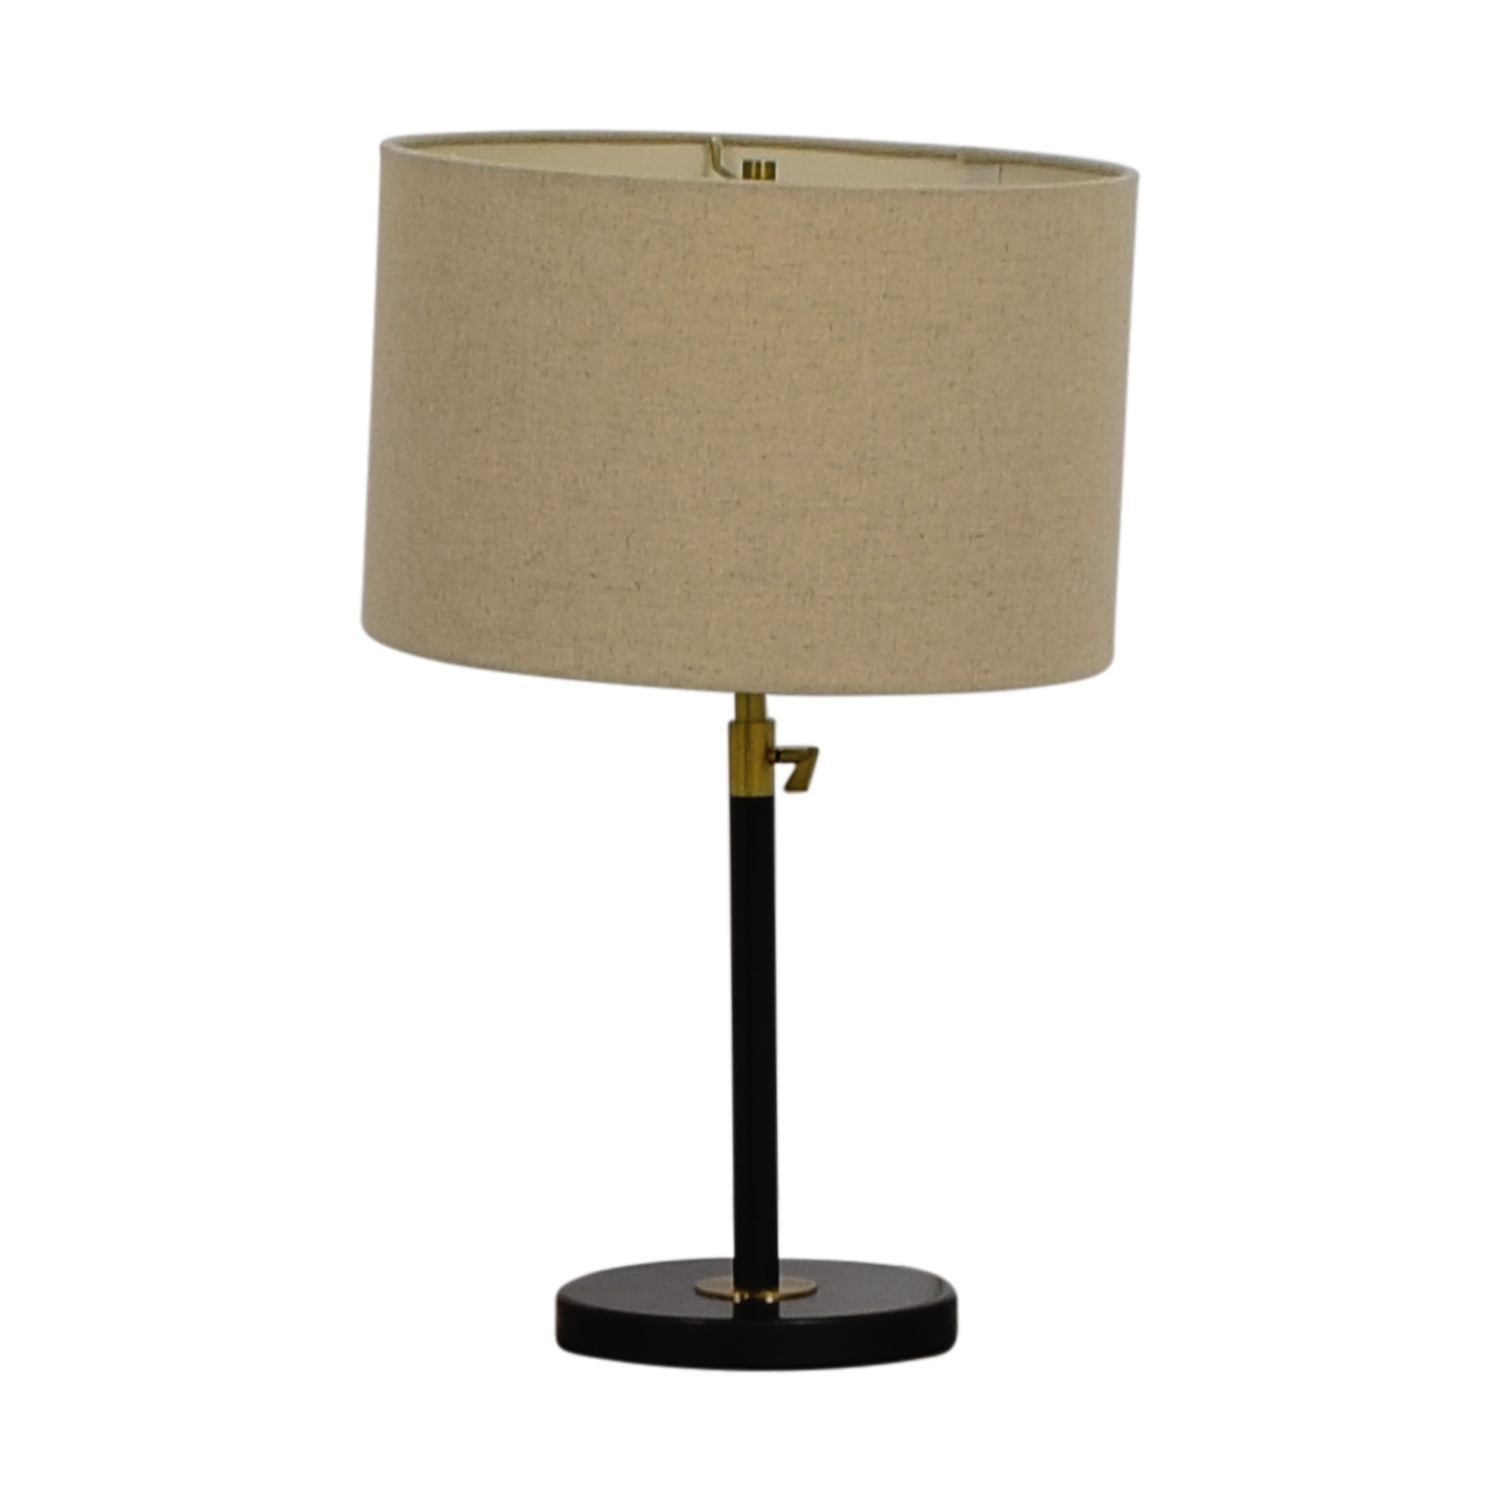 West Elm West Elm Black Telescoping Table Lamp second hand